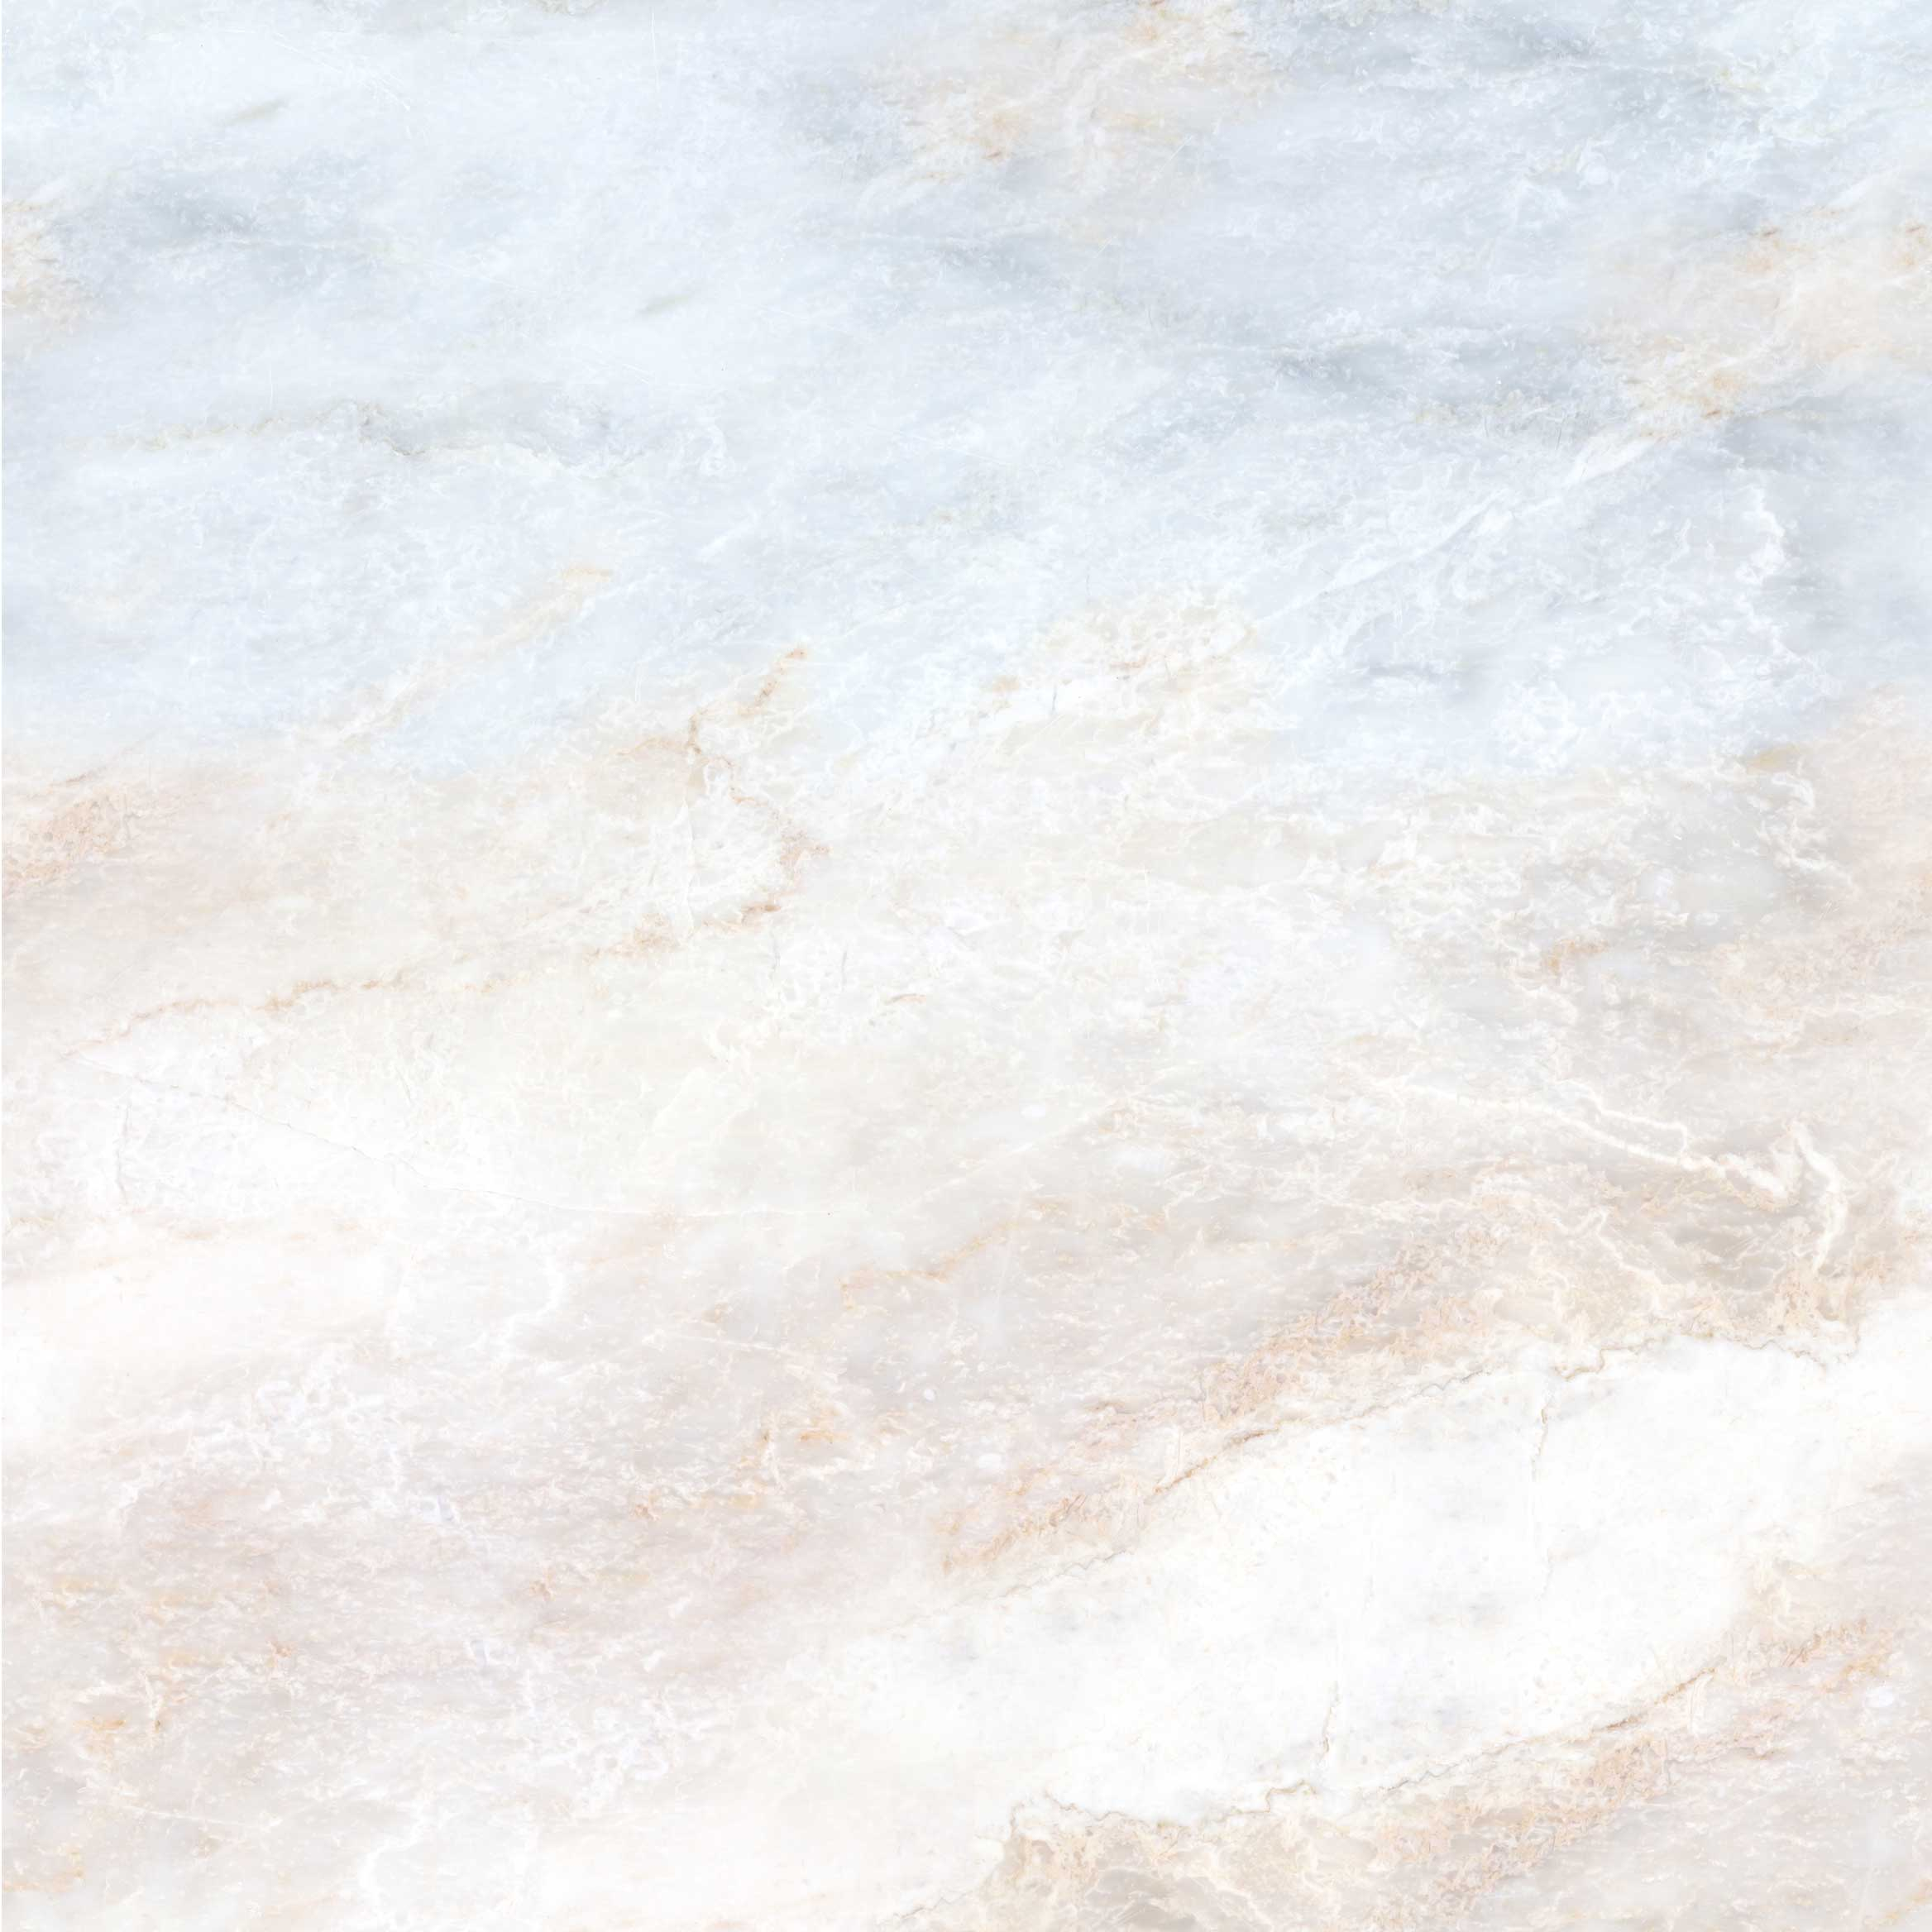 Soft Marble Wallpaper Detail